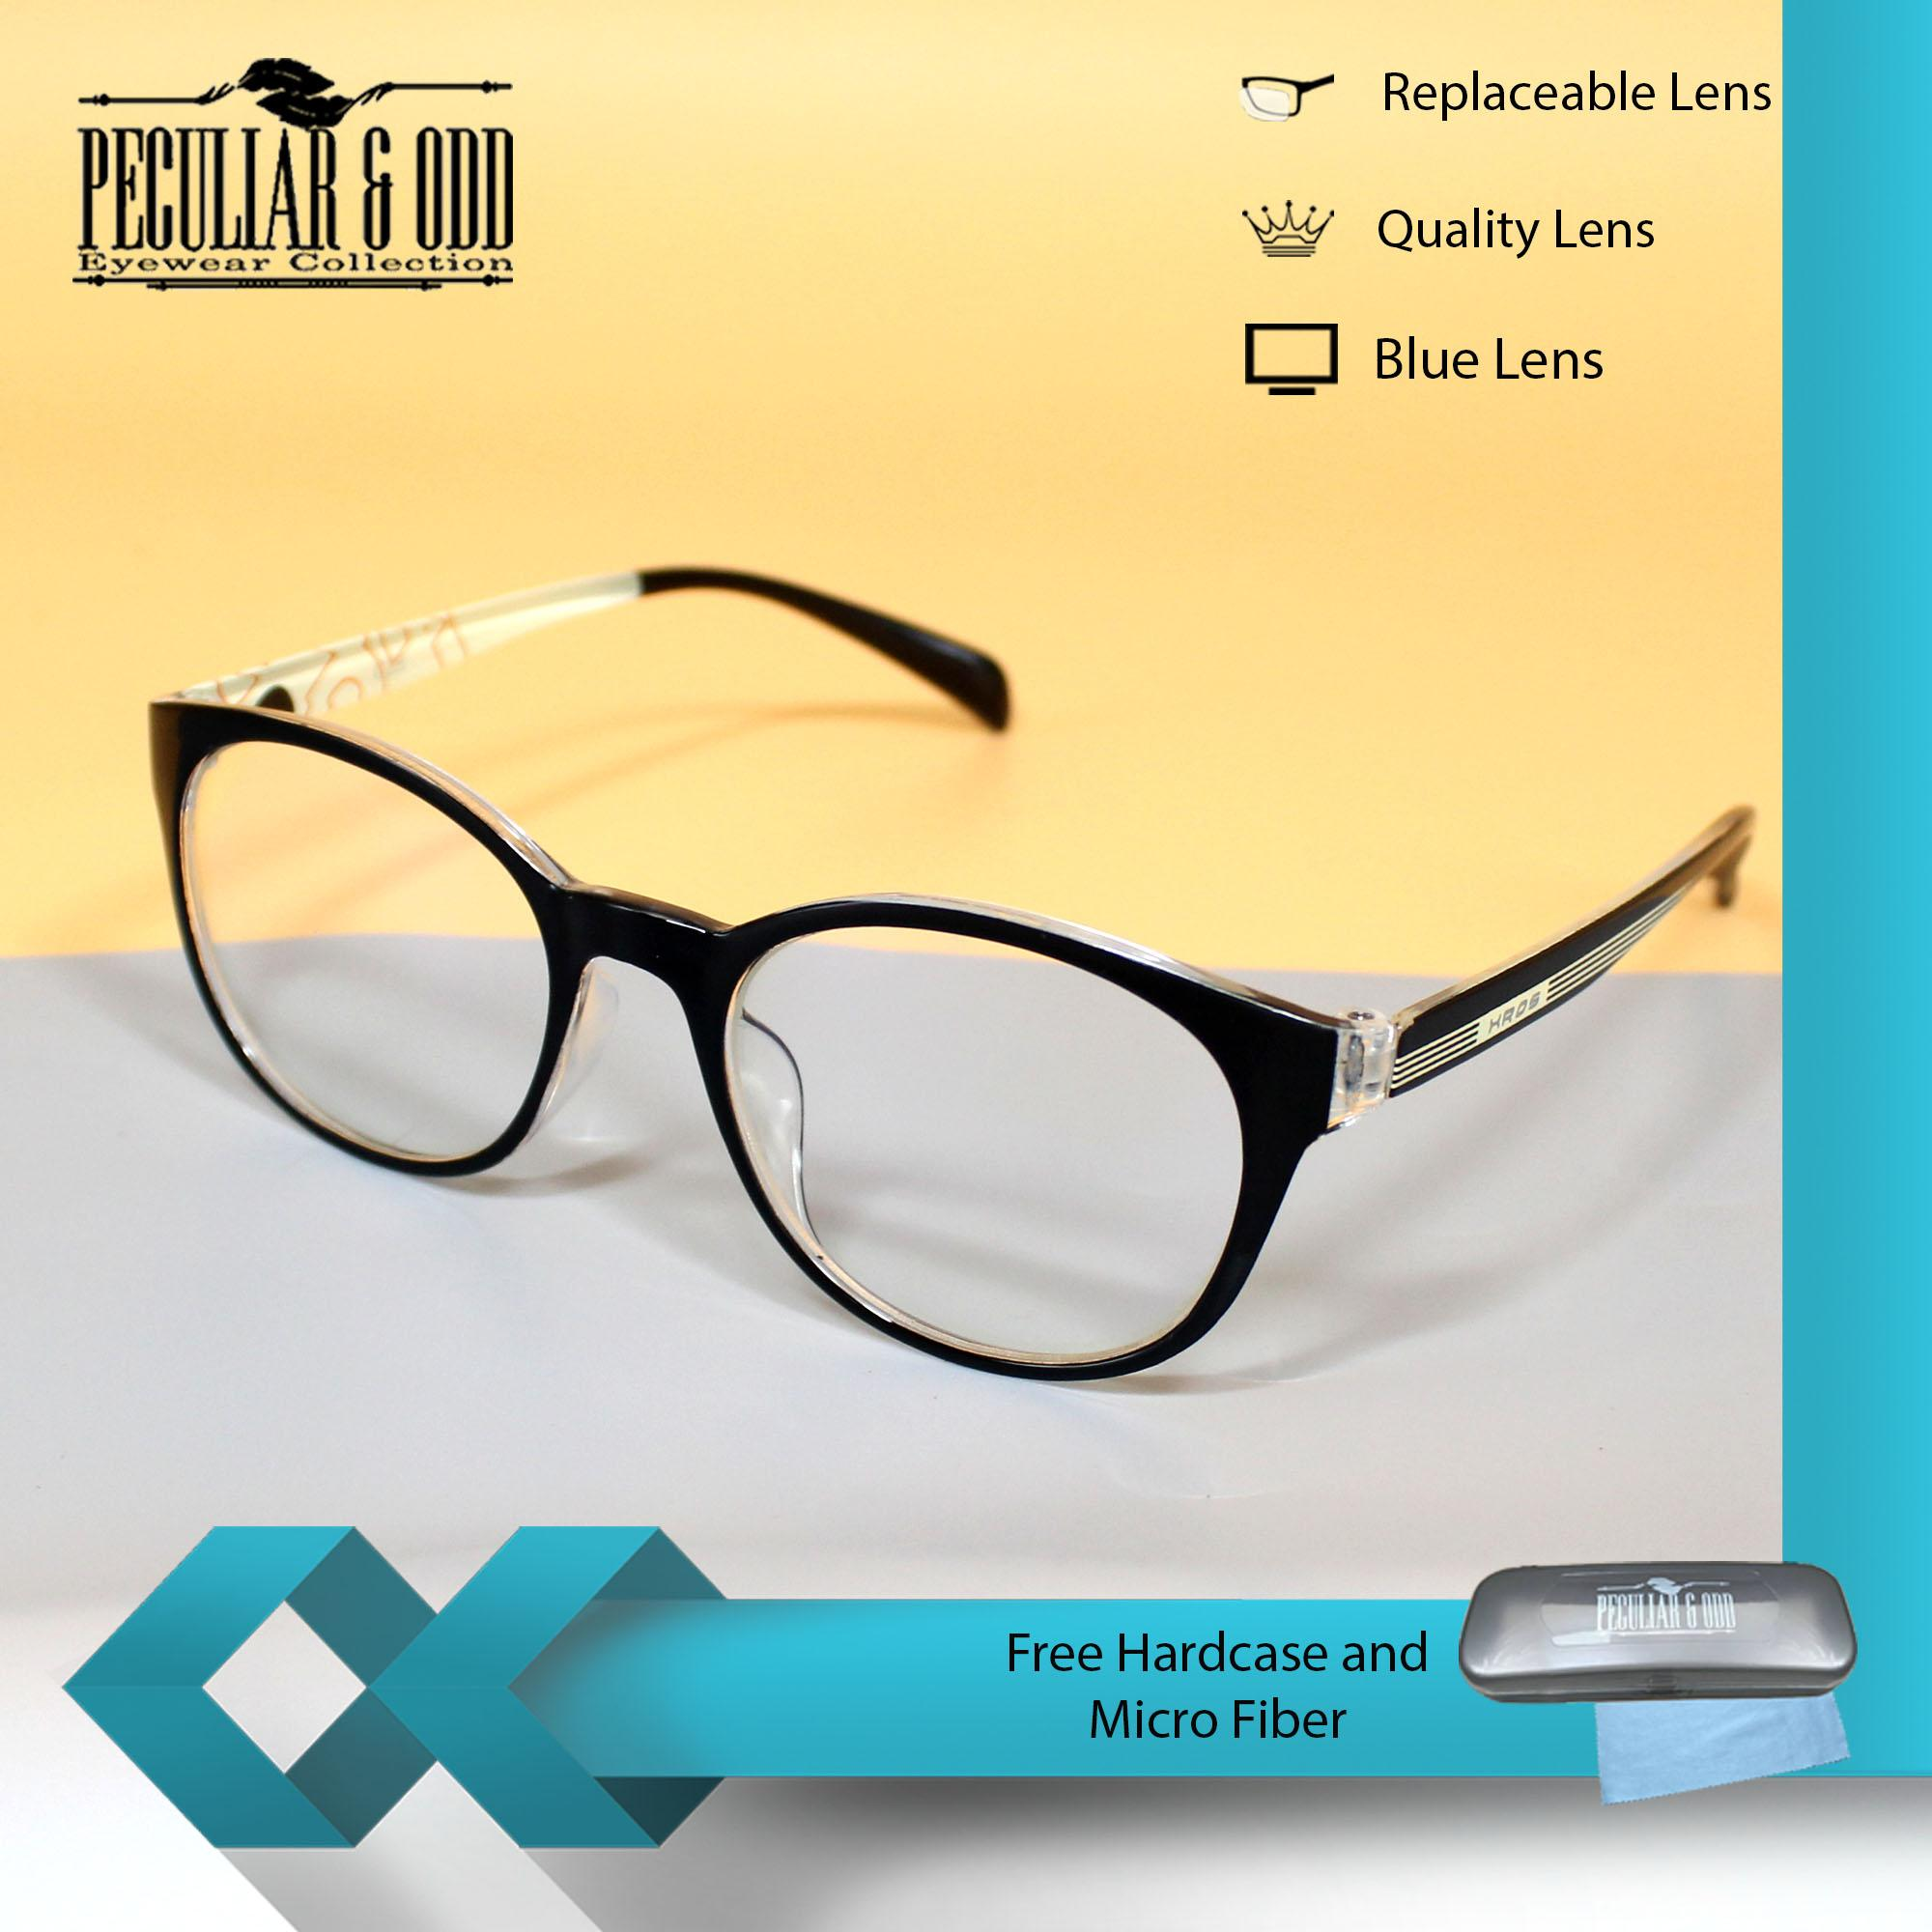 Optical Round Lightweigth Spectacles S493_BlackTrans Multi-coated Computer Anti-Radiation Replaceable Blue Lens Eyewear_Unisex